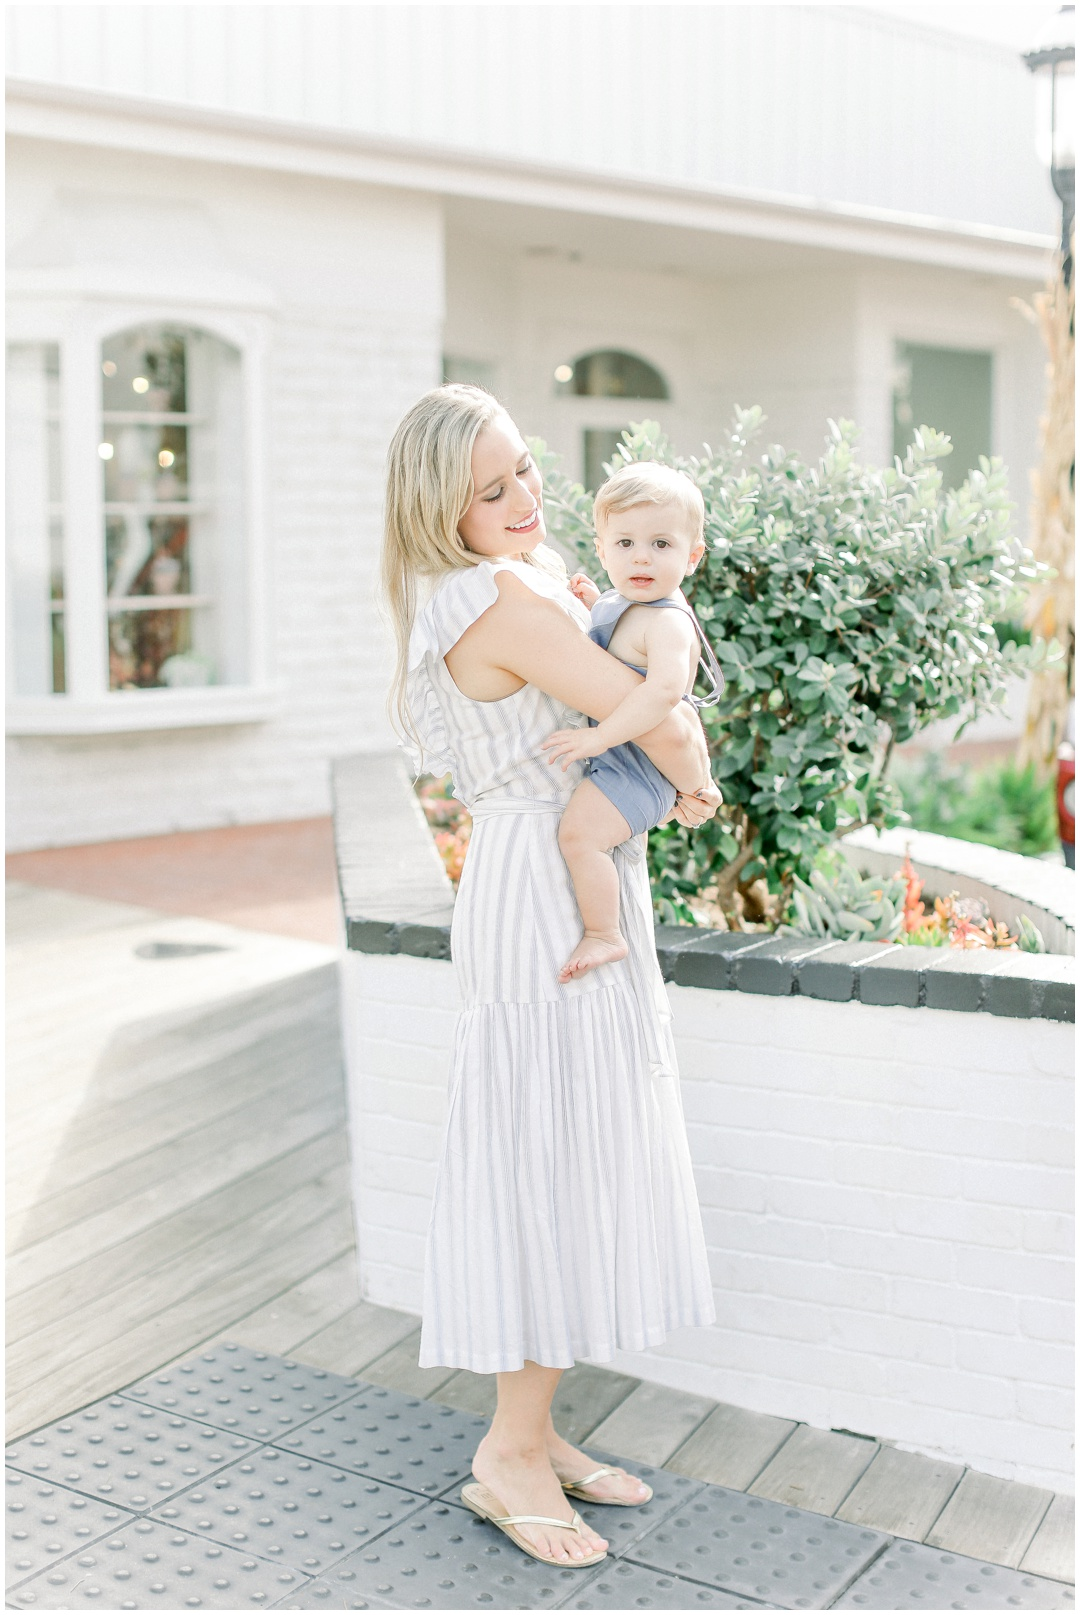 Lido_Marina_Village_Session_Photographer_Newport_Beach_Family_Photographer_Newport_Beach_Newborn_Photographer_Orange_County_Family_Photographer_Cori_Kleckner_Photography_Huntington_Beach_Photographer_Lara_Langford_Family_Session_2649.jpg